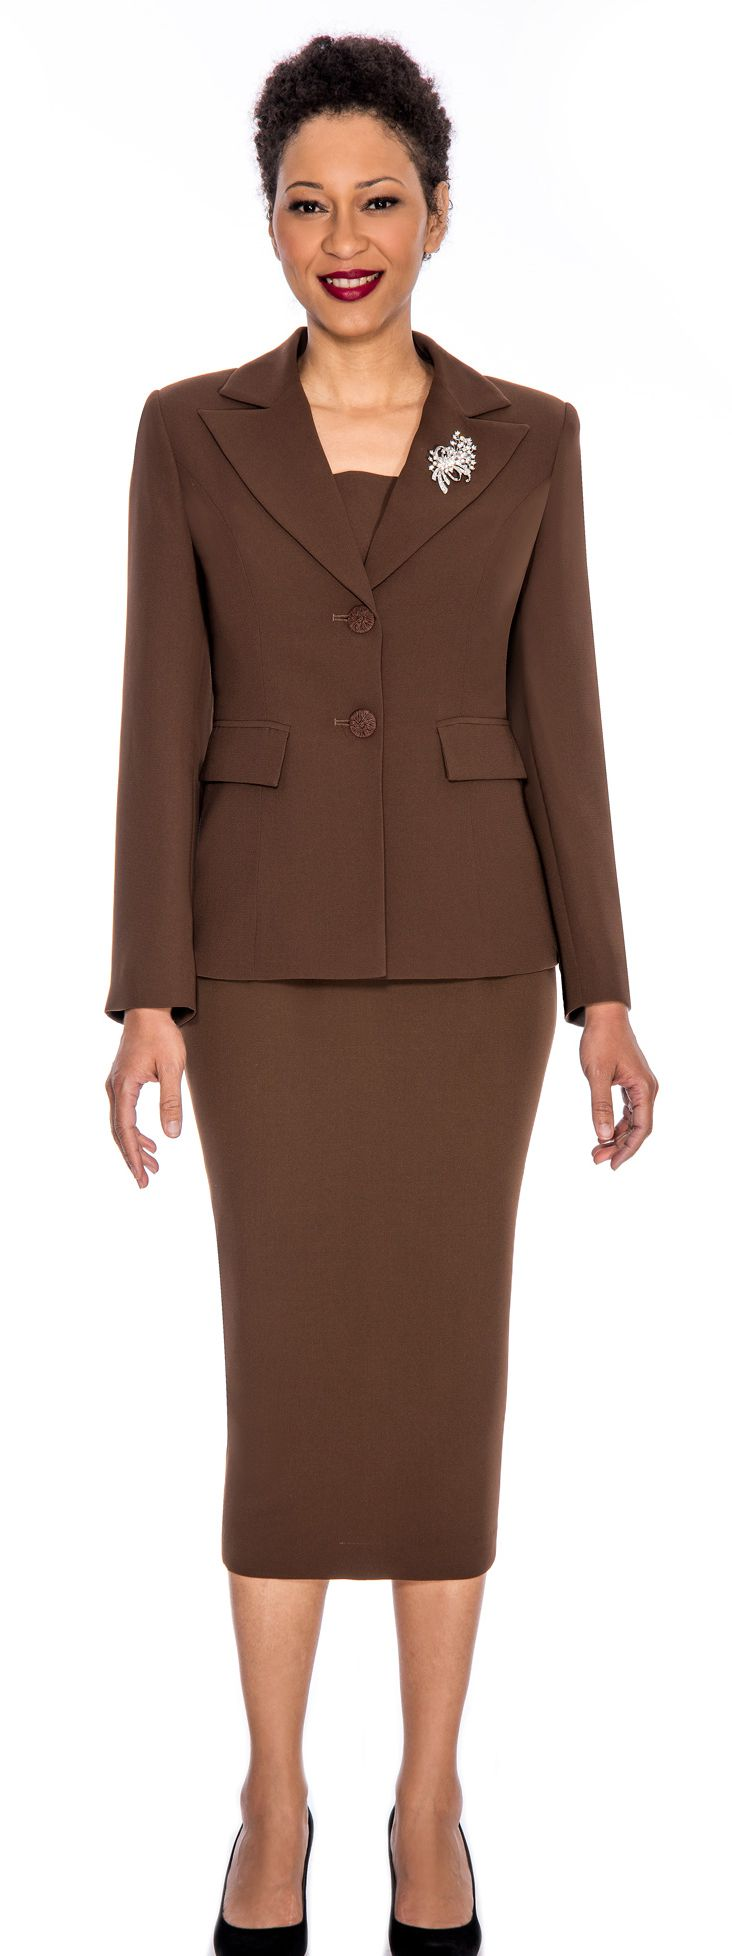 Giovanna Usher Suit 0710-Chocolate - Church Suits For Less